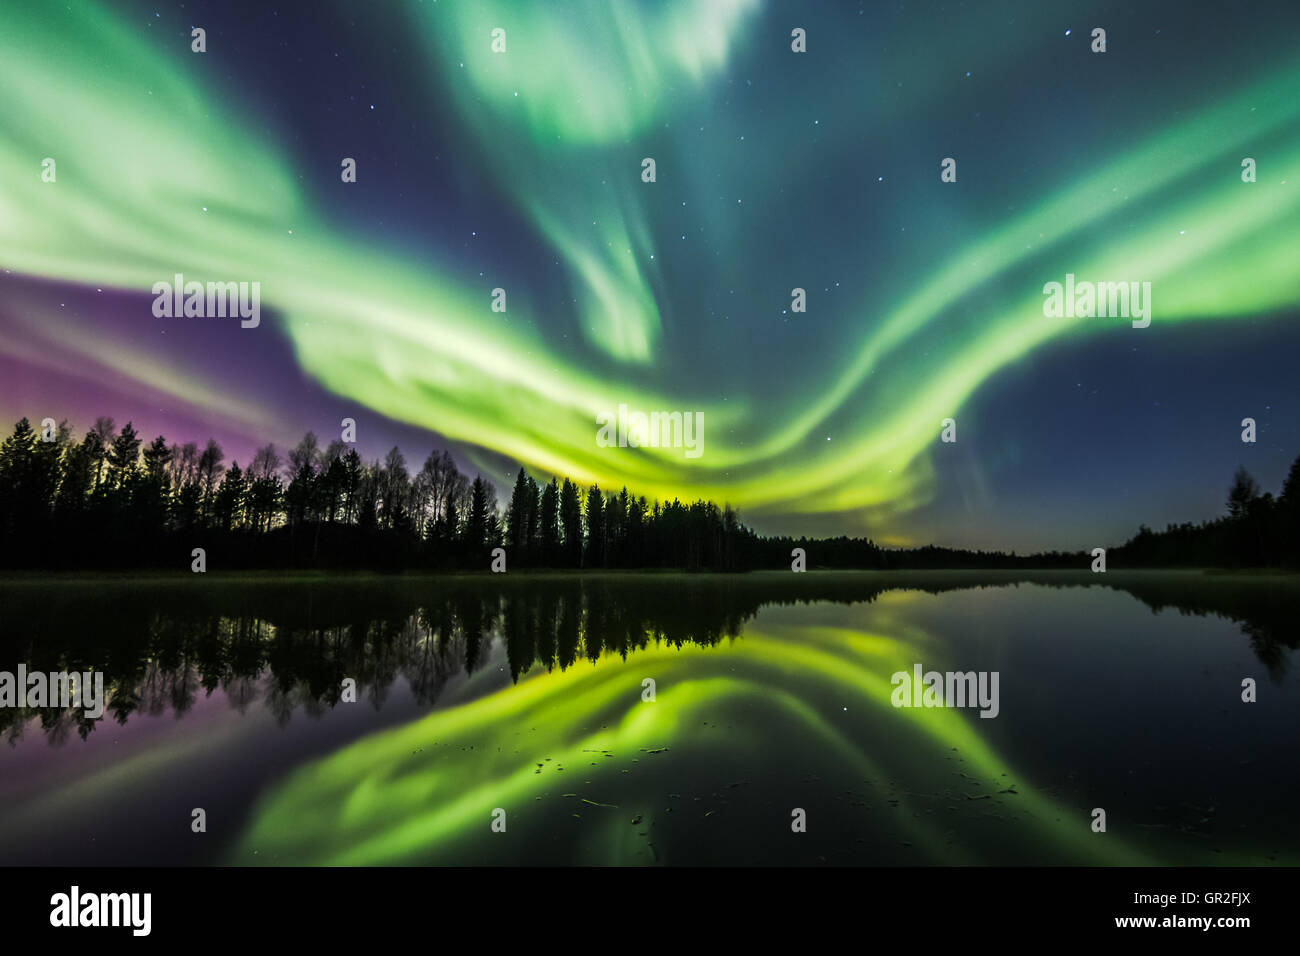 Northern Lights over a lake in Oulu, Finland - Stock Image